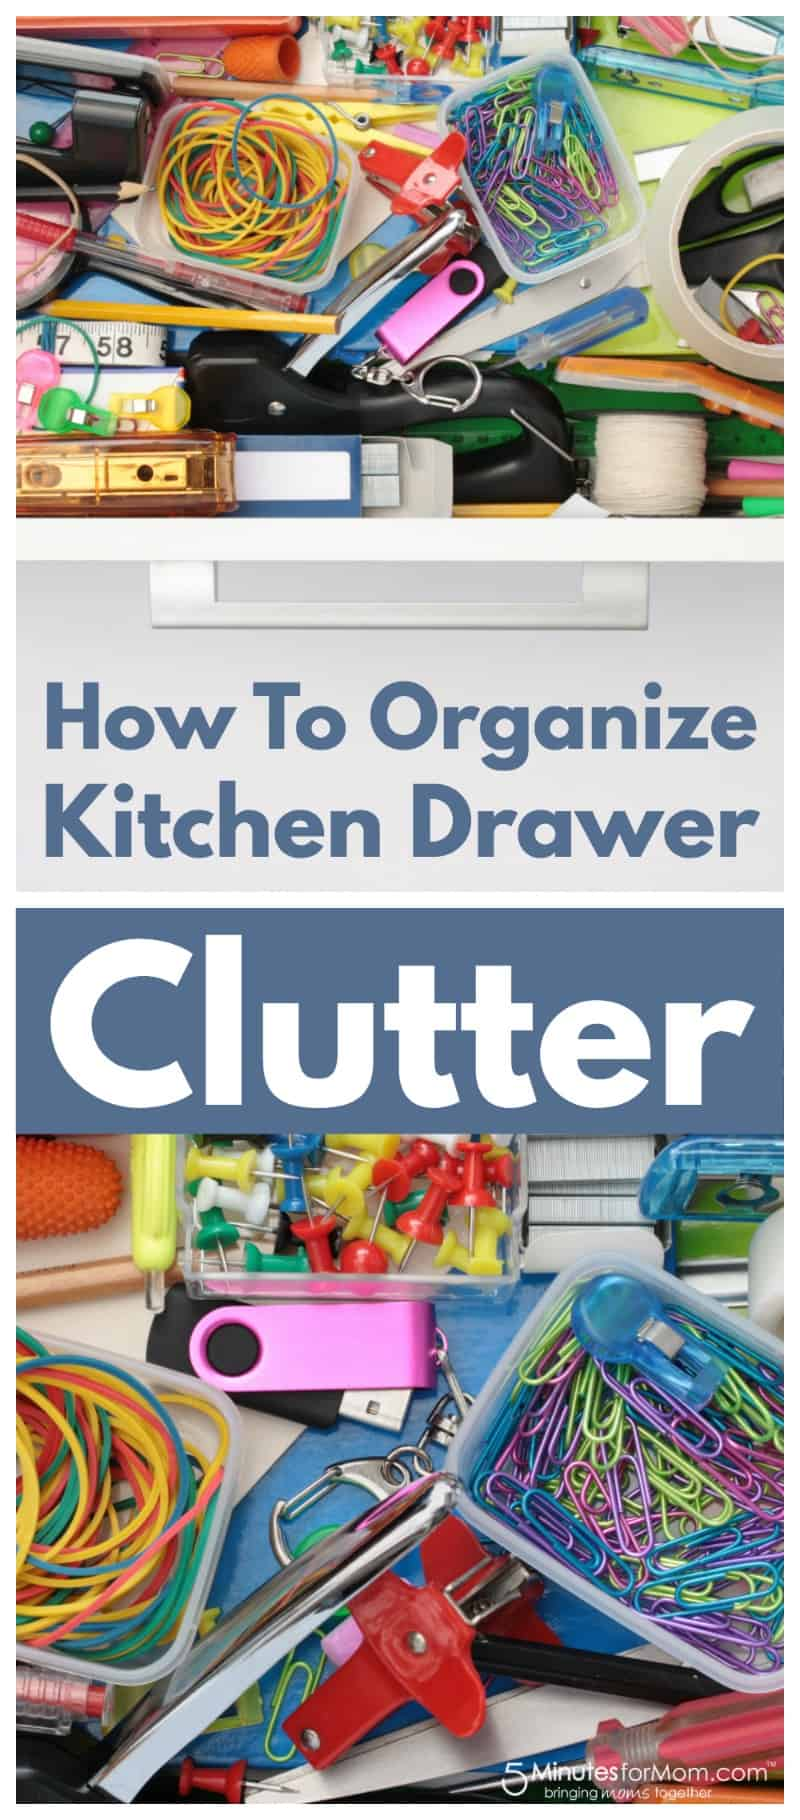 How To Organize Kitchen Drawer Clutter 5 Minutes For Mom